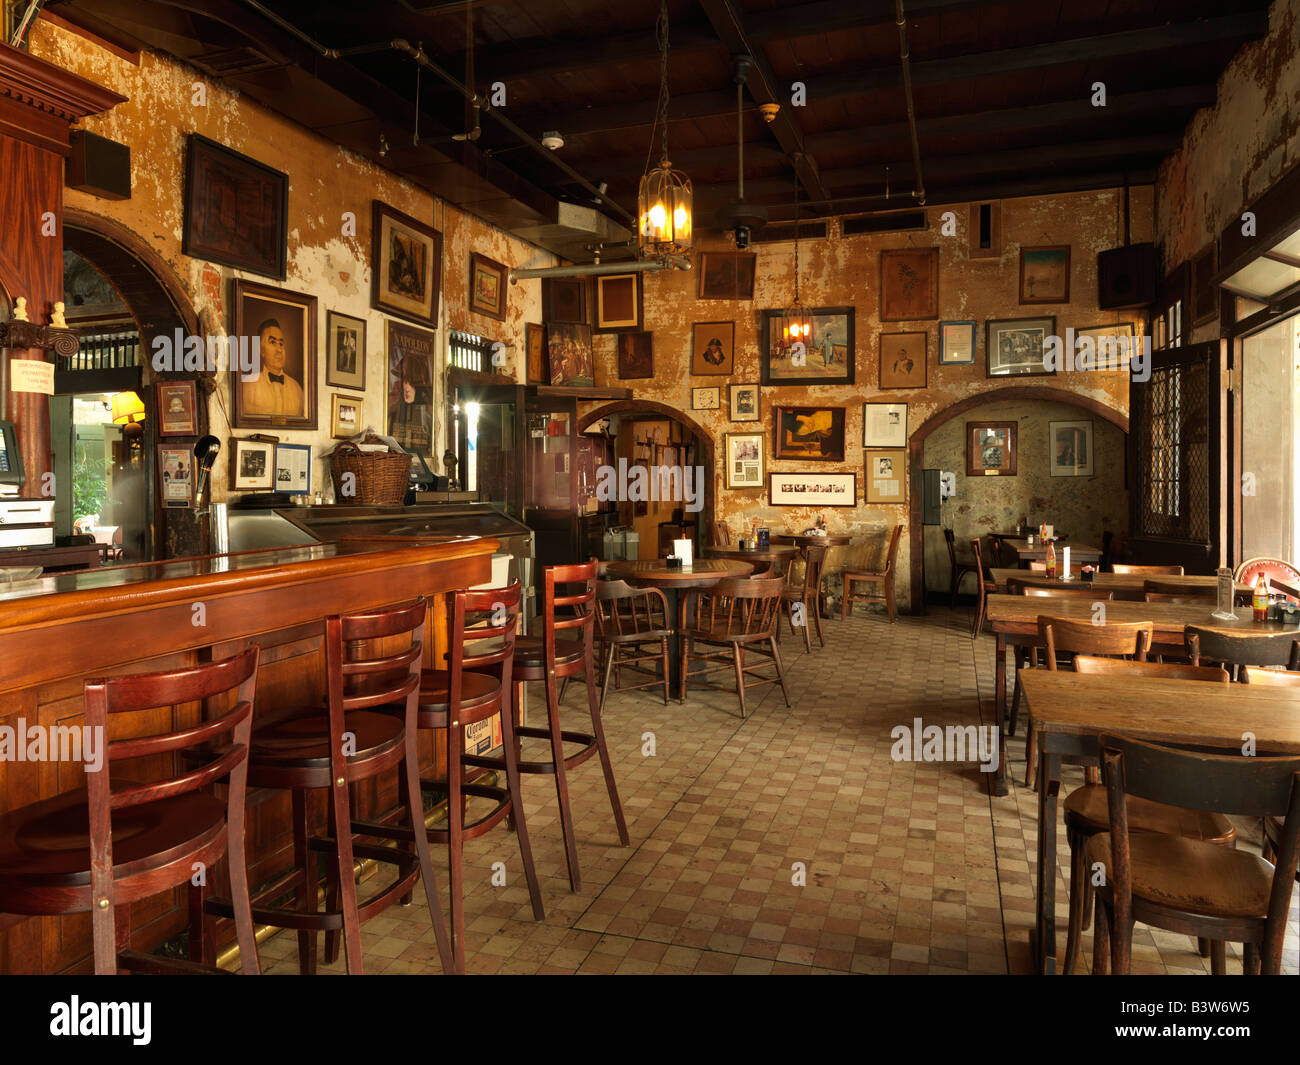 USA,Louisiana,New Orleans,French Quarter,Napoleon House a famous French Quarter bar and restaurant - Stock Image